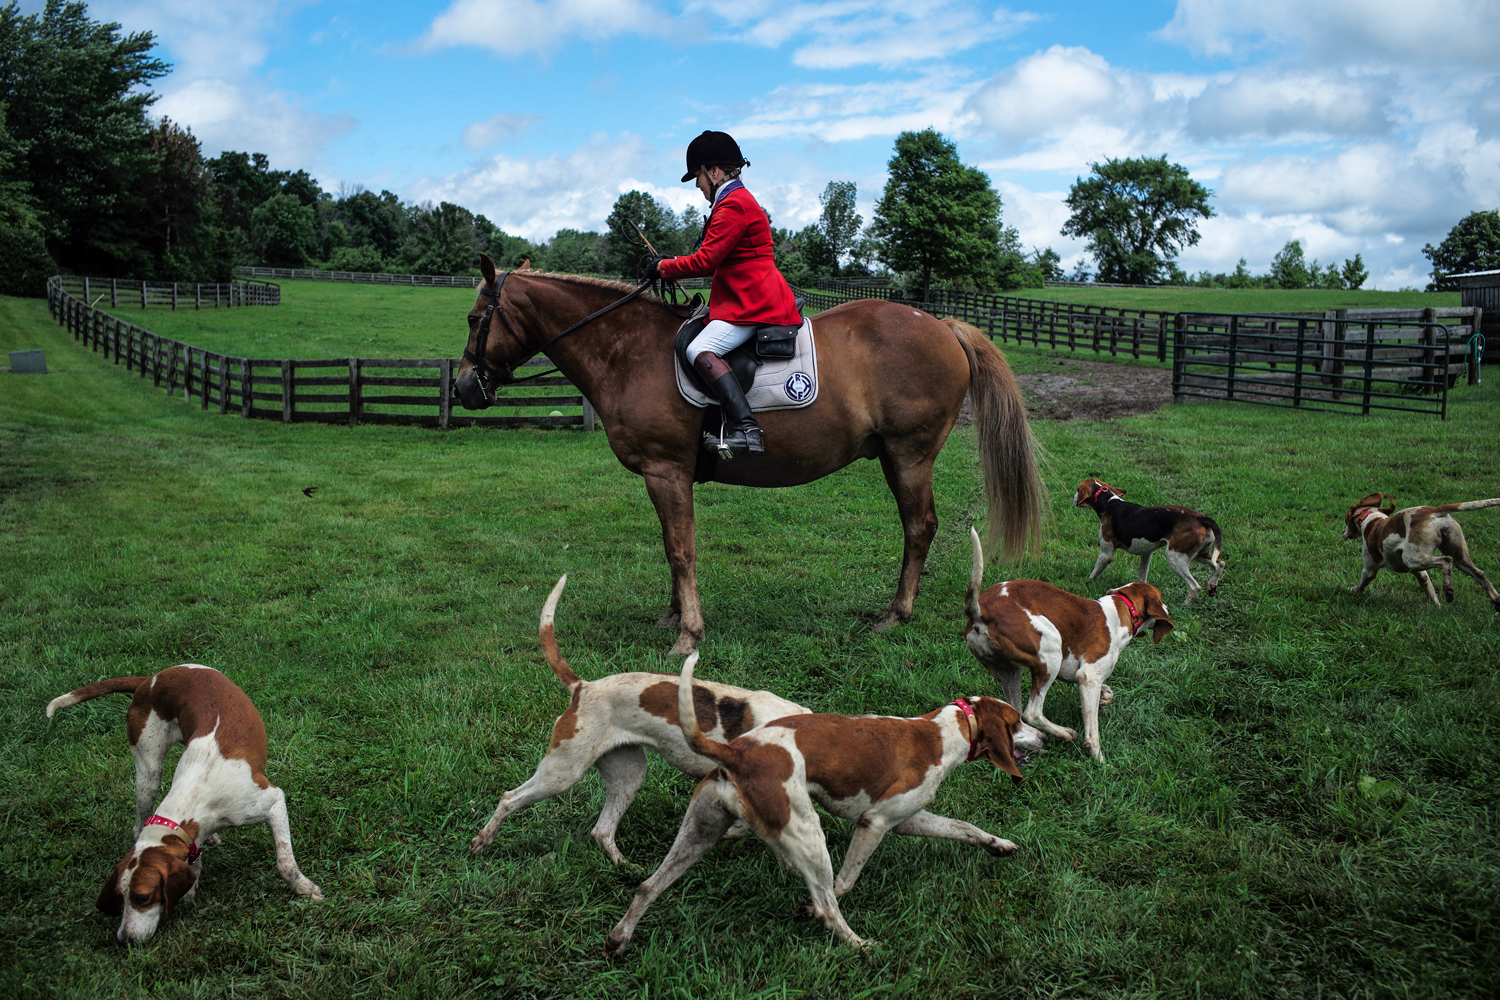 dogs circling horse